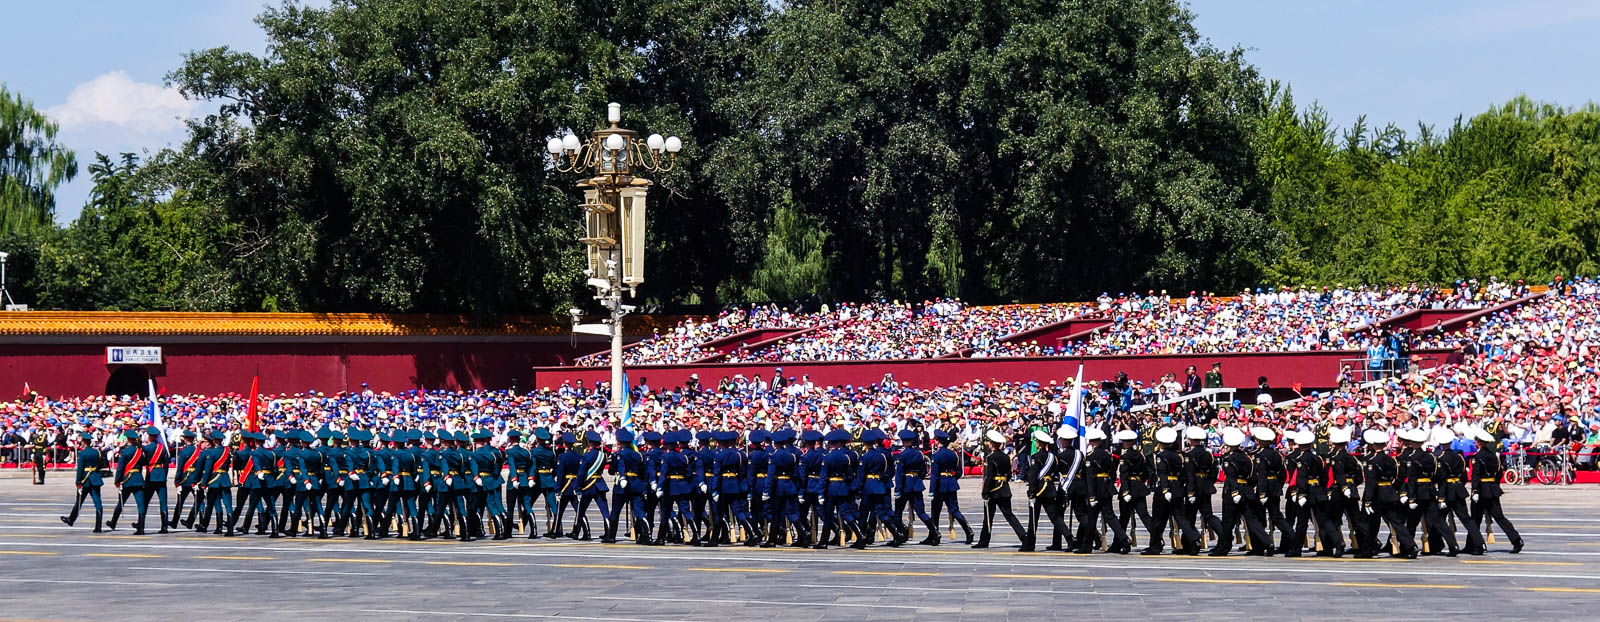 beijing-china-military-parade-2015-27